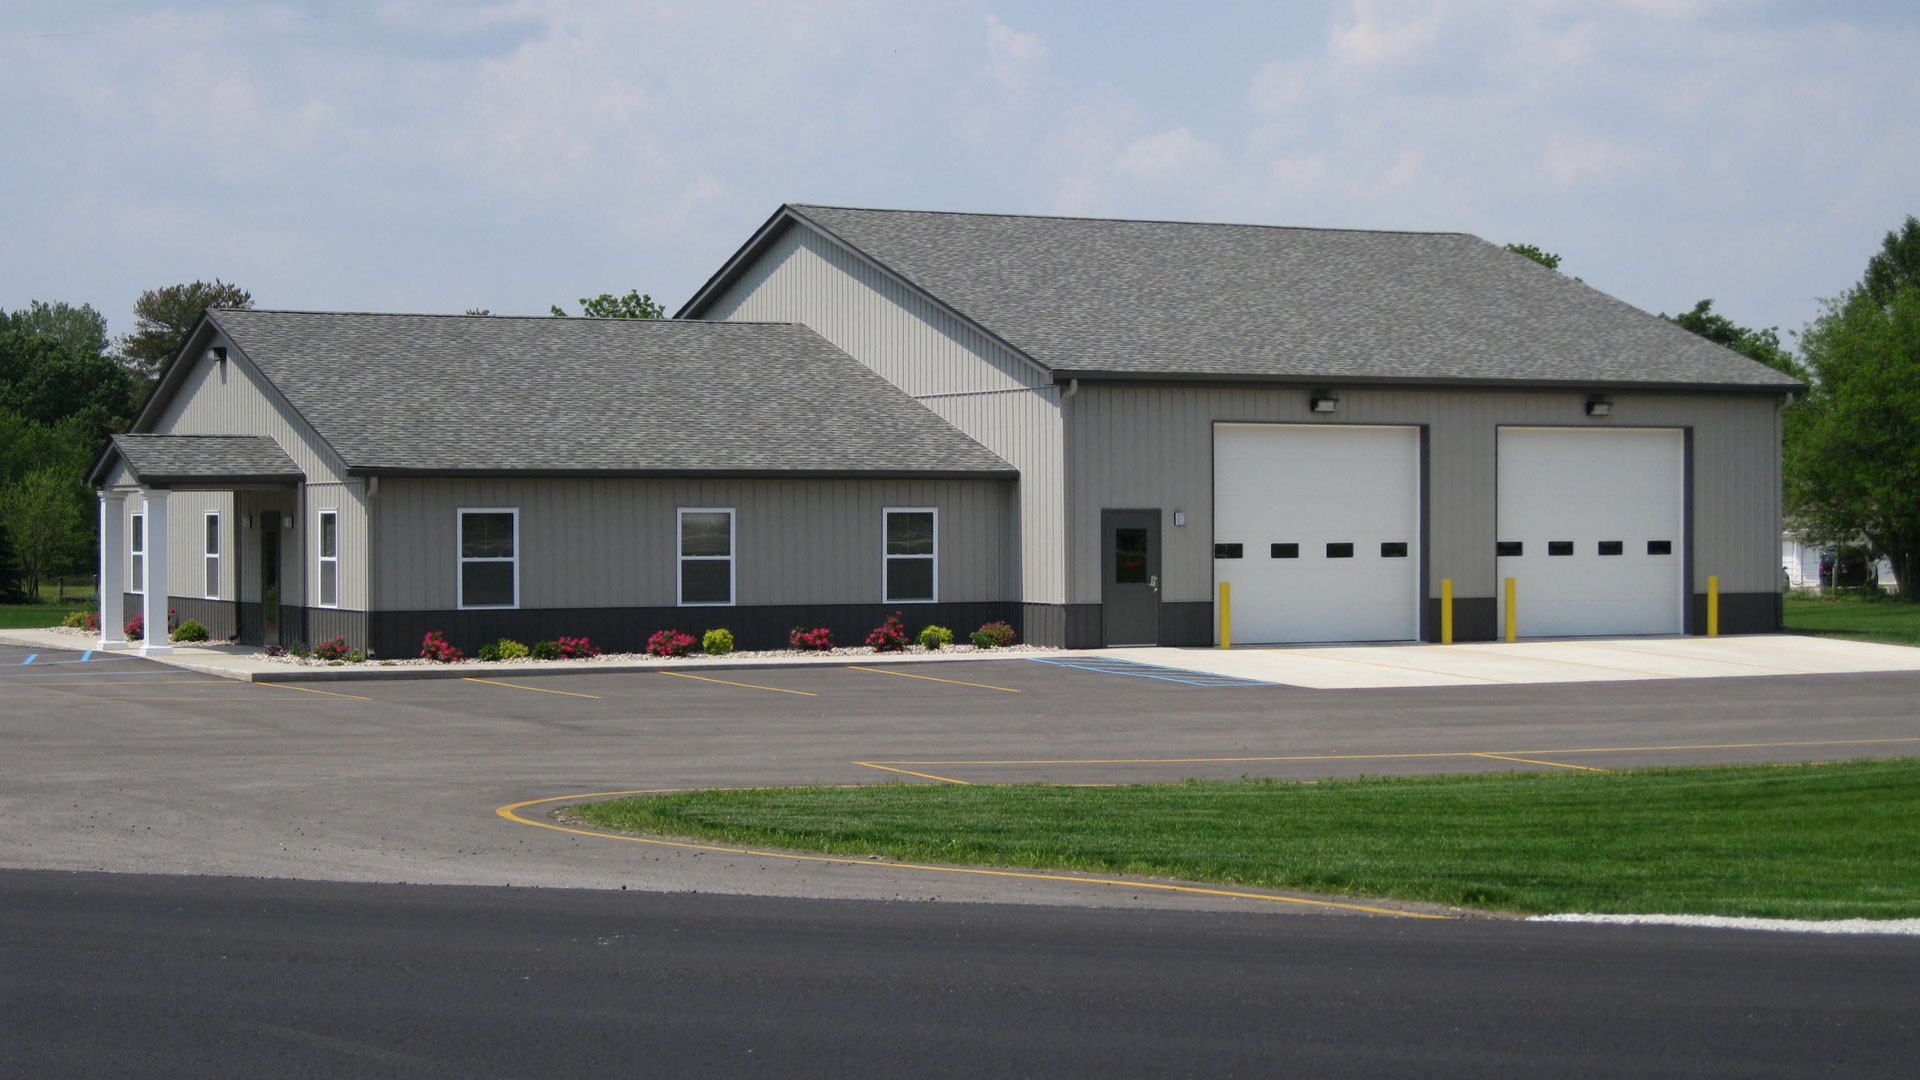 Walker Township Fire Department